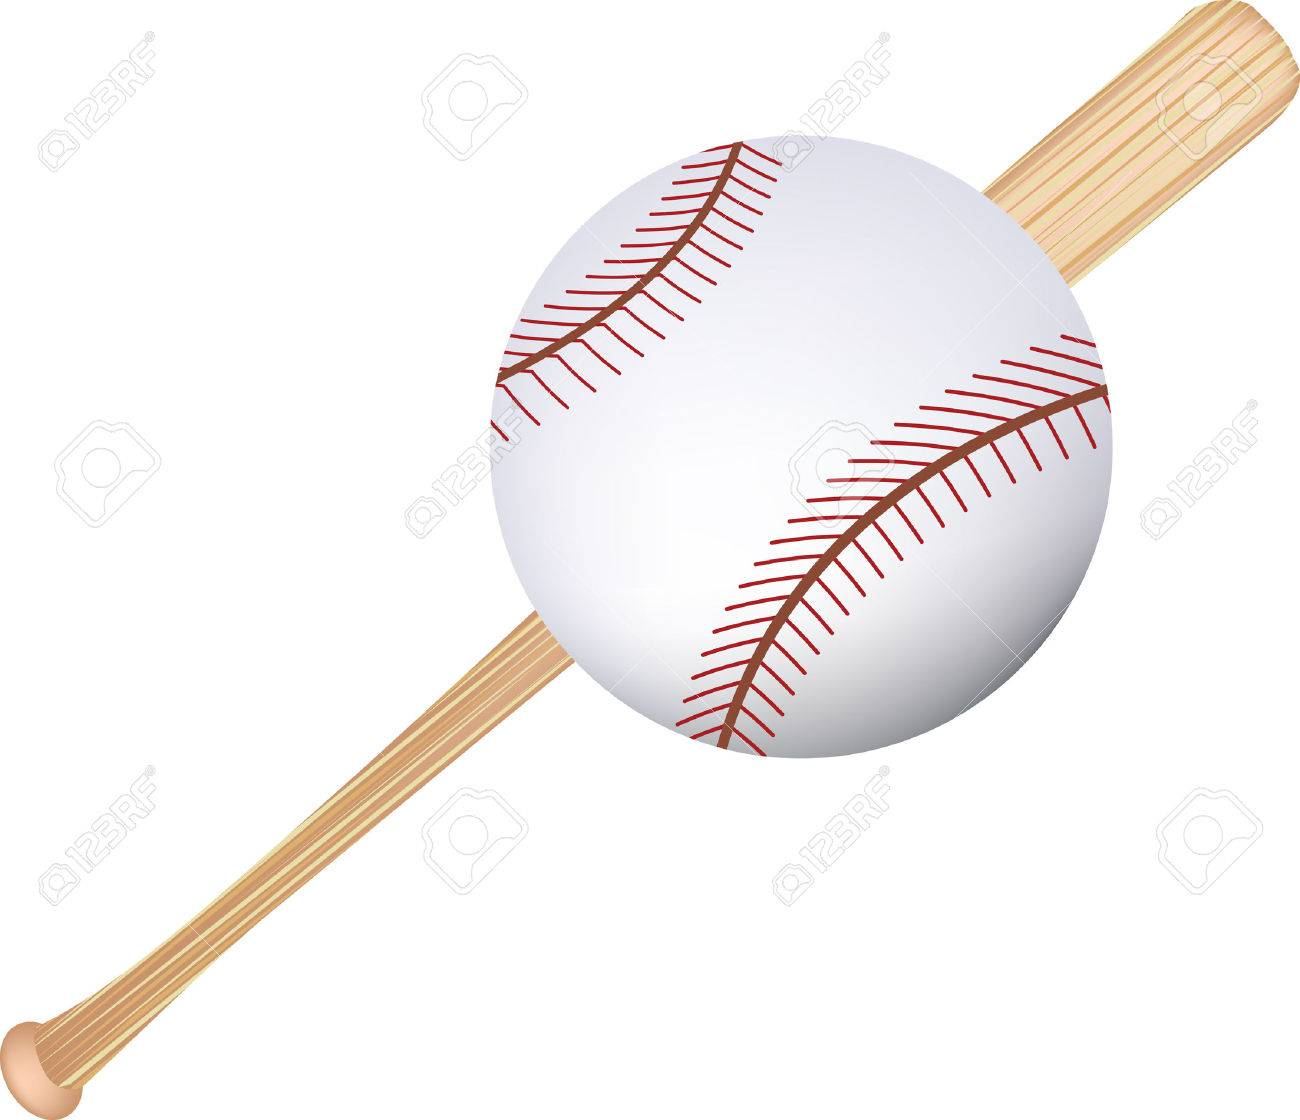 Simple Icon Style Illustration Of A Baseball Bat And Ball Stock Vector